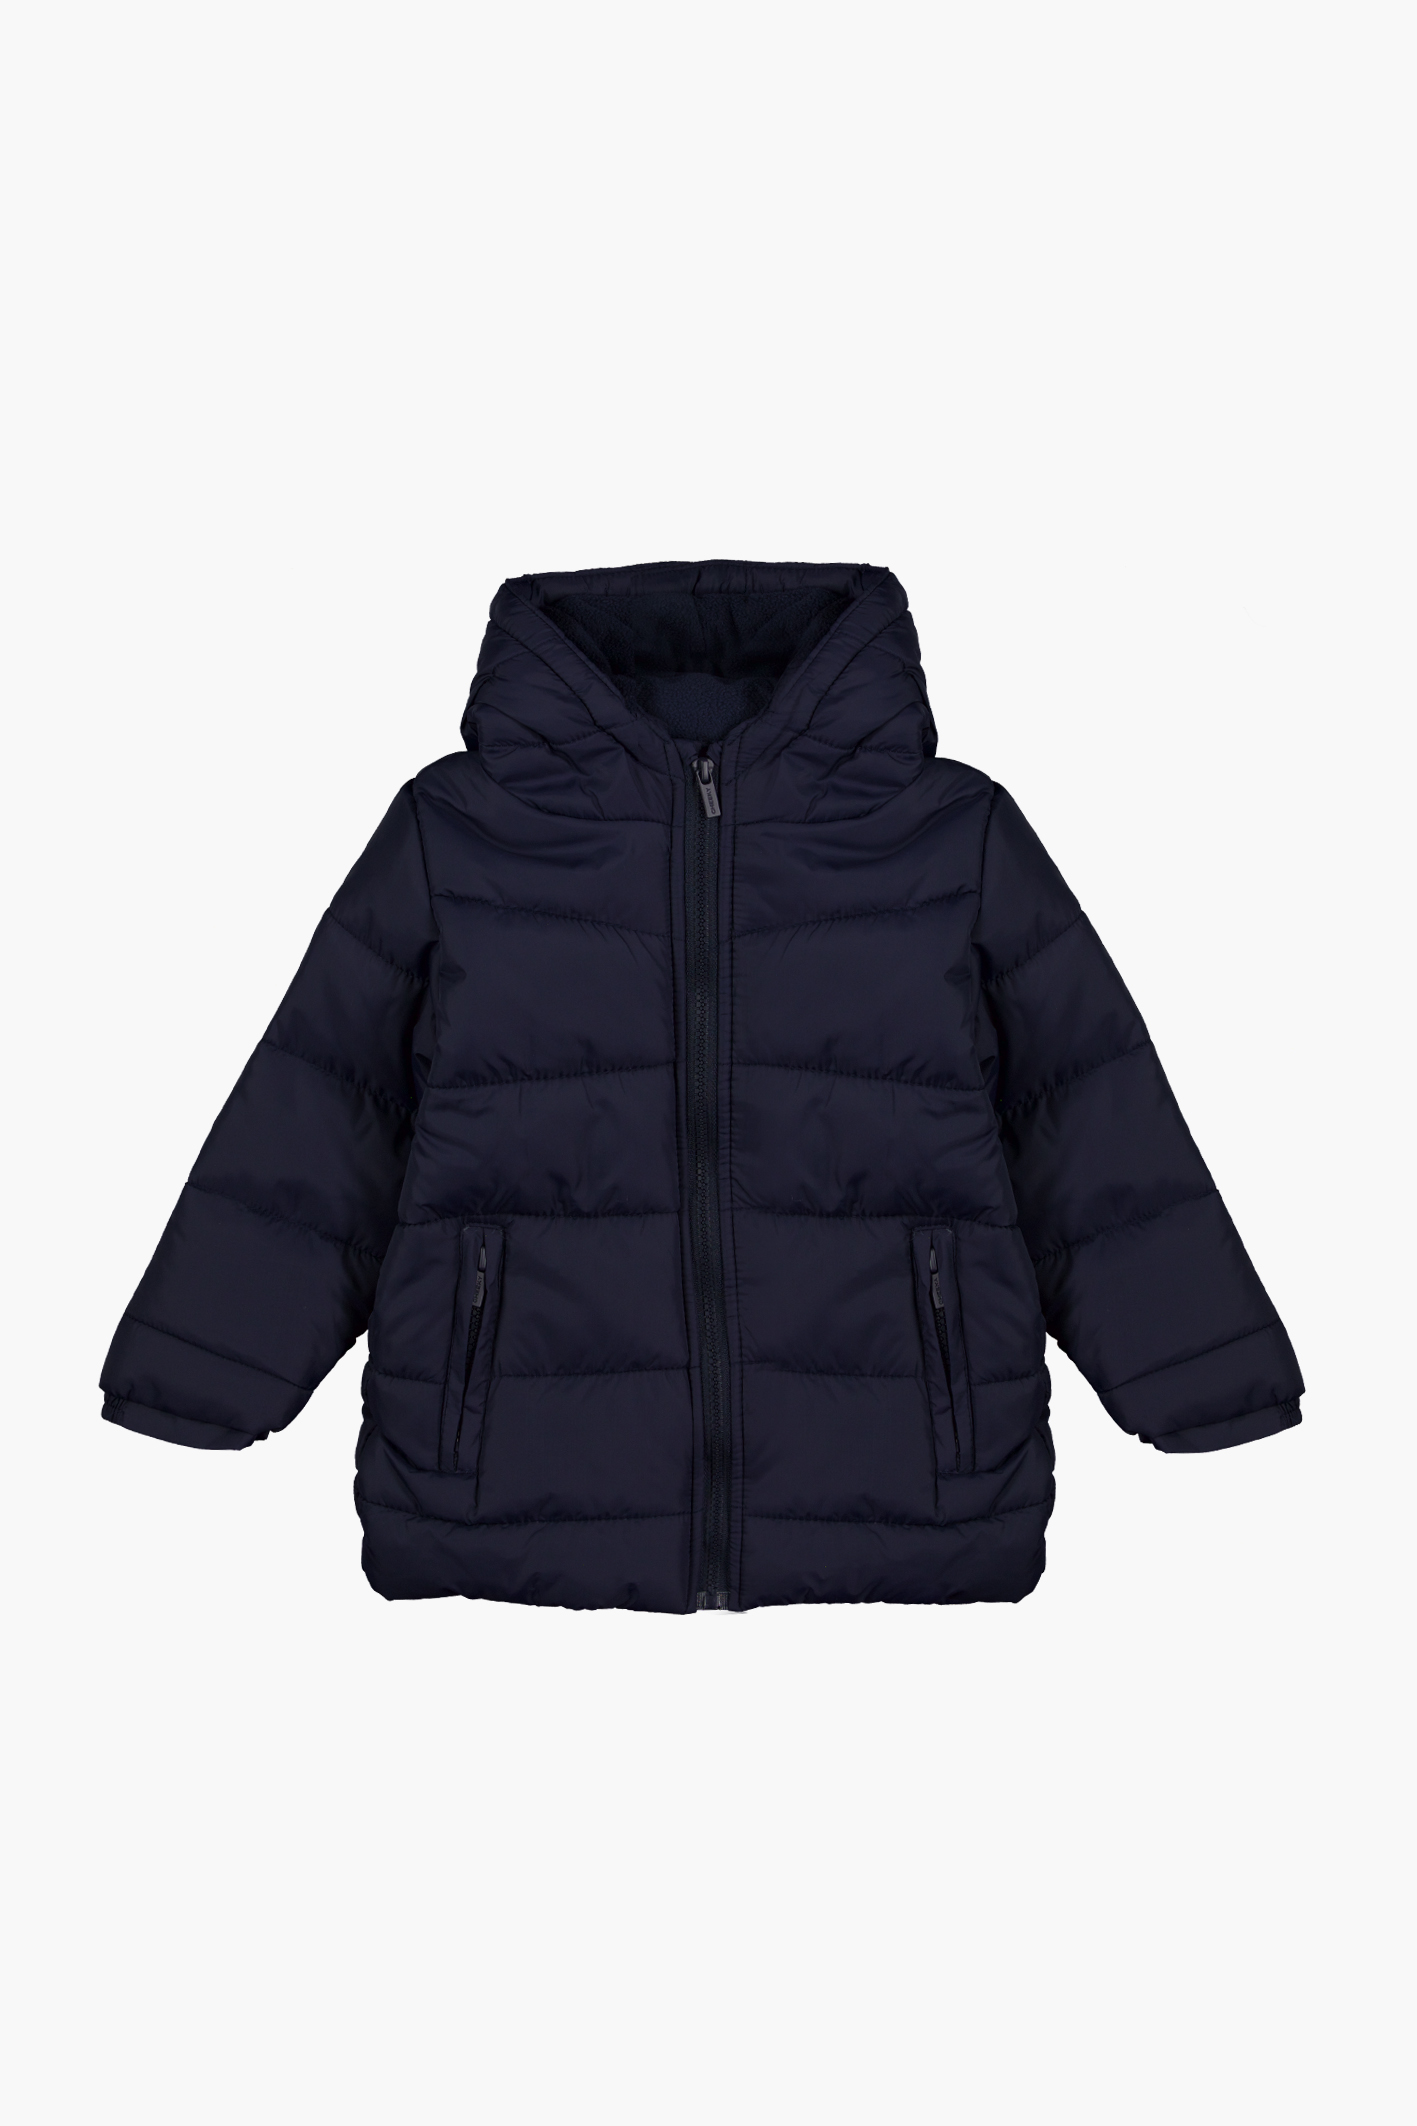 cheeky_campera-new-basic-kids-2-14_28-29-2020__picture-51536